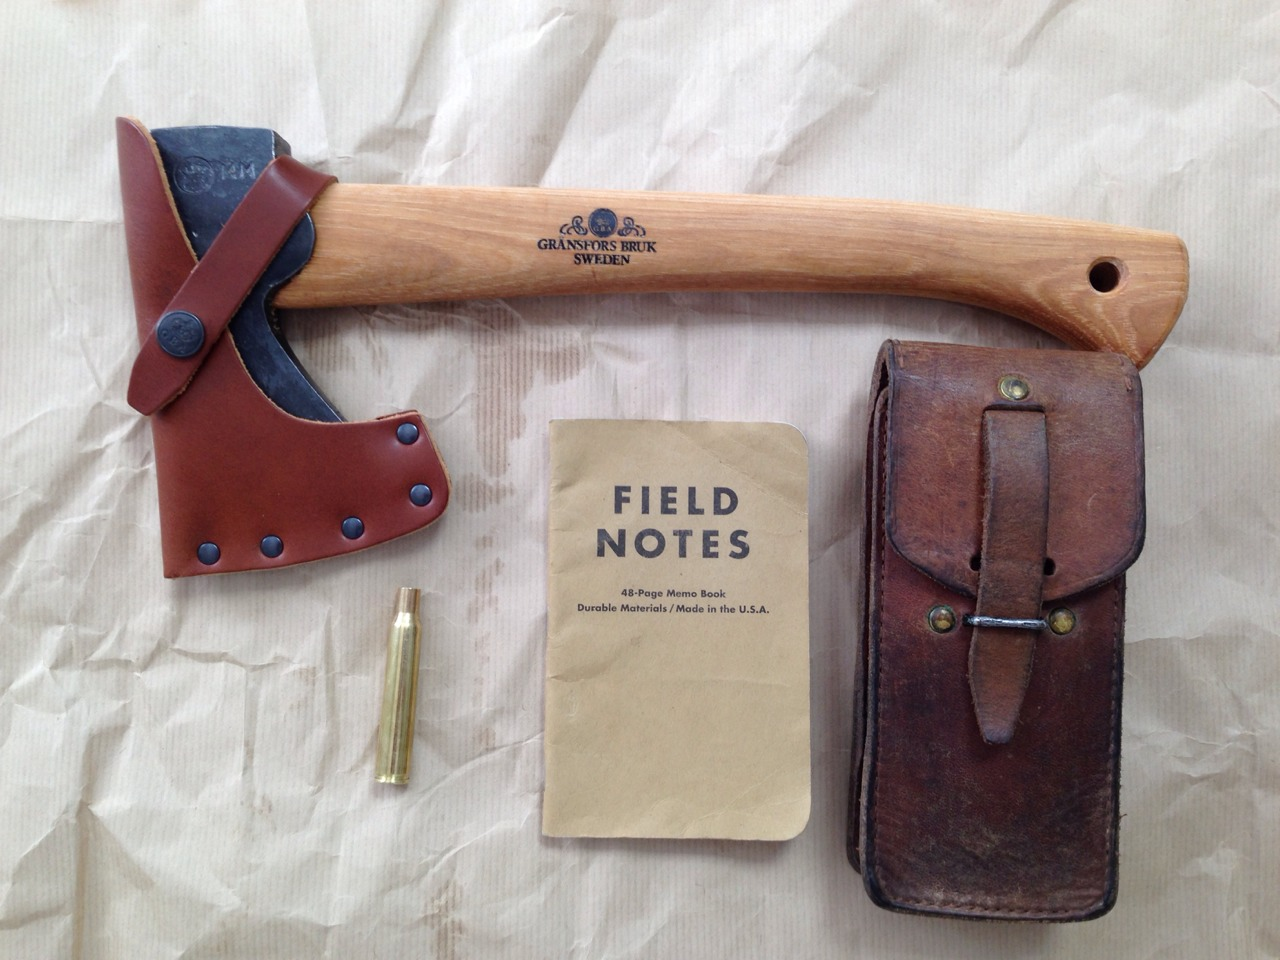 janailhac: My new Gransfors Bruks axes http://www.dailycarry.co